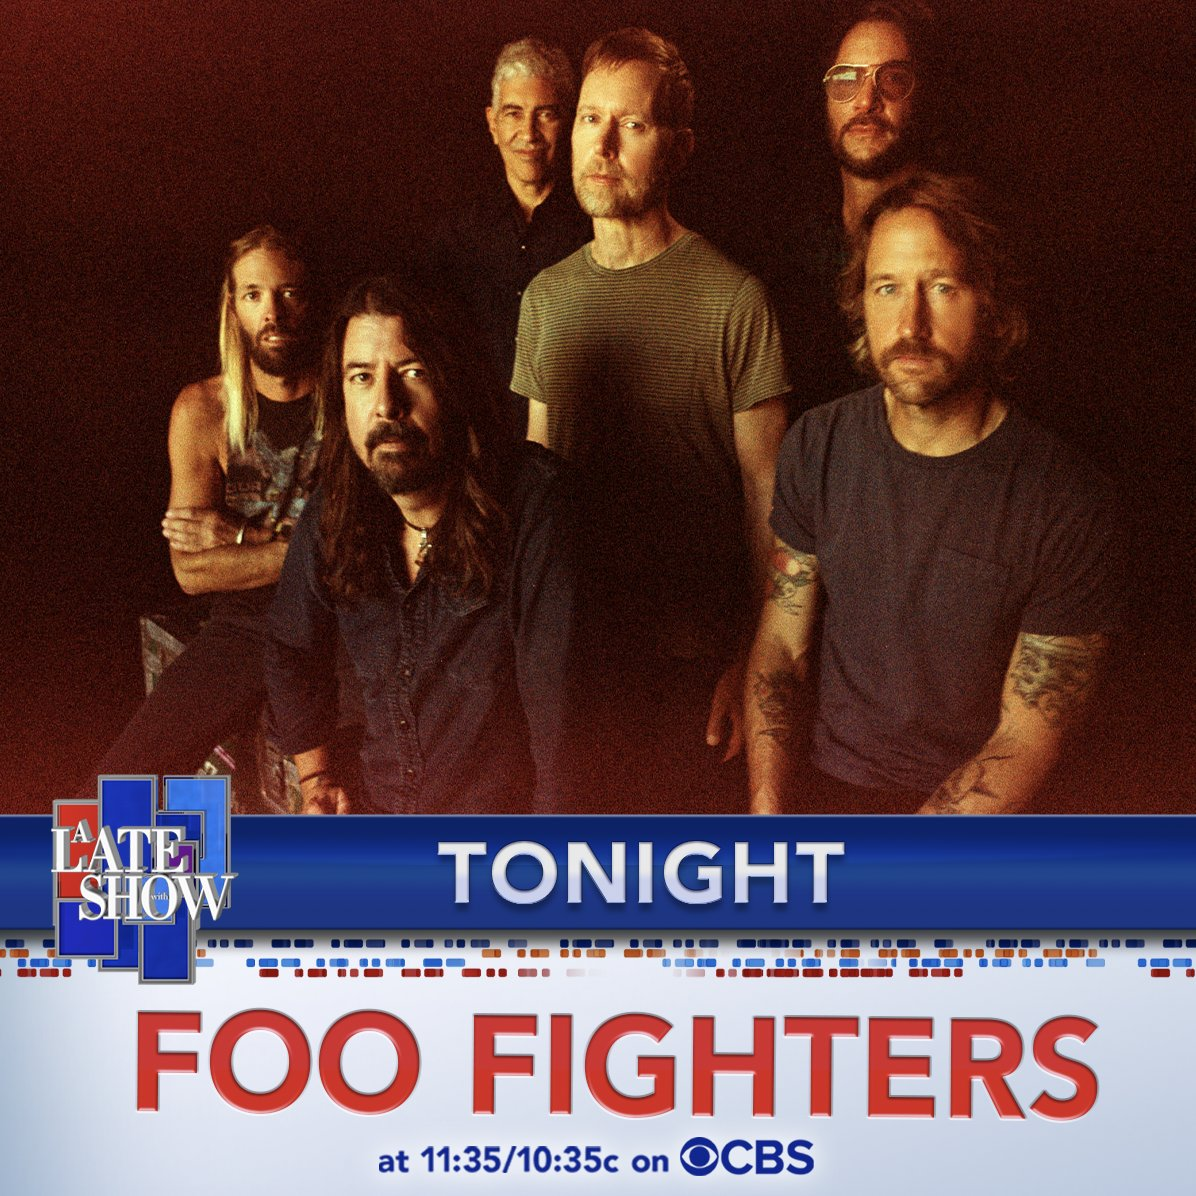 Replying to @colbertlateshow: There's only ONE place you can see the @foofighters tonight! 😉 #LSSC